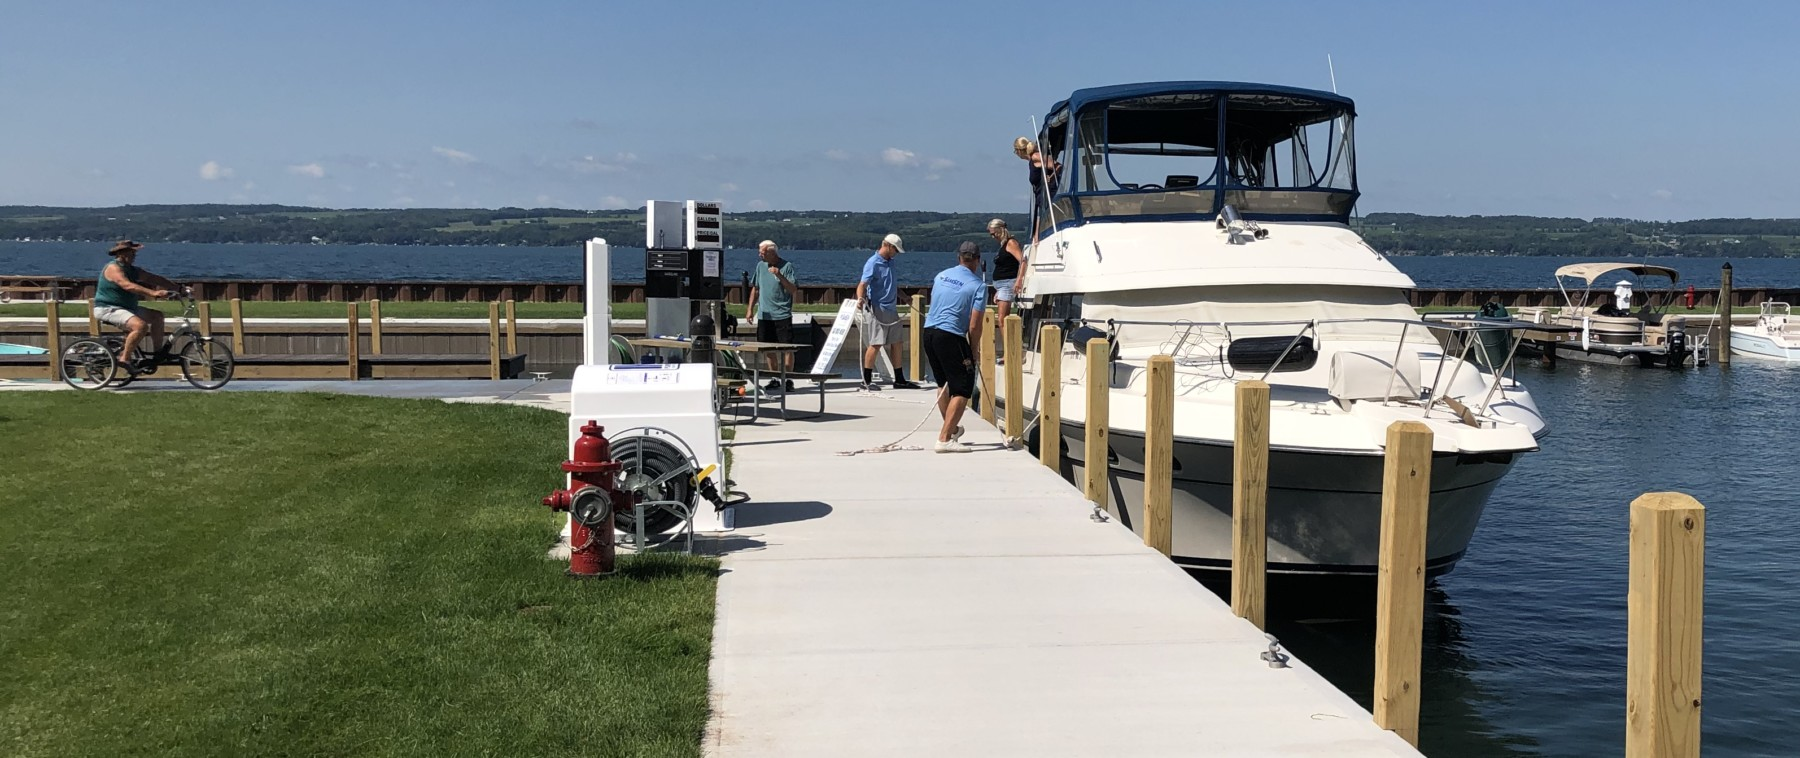 Fuel Station at Samsen Marina on Seneca Lake